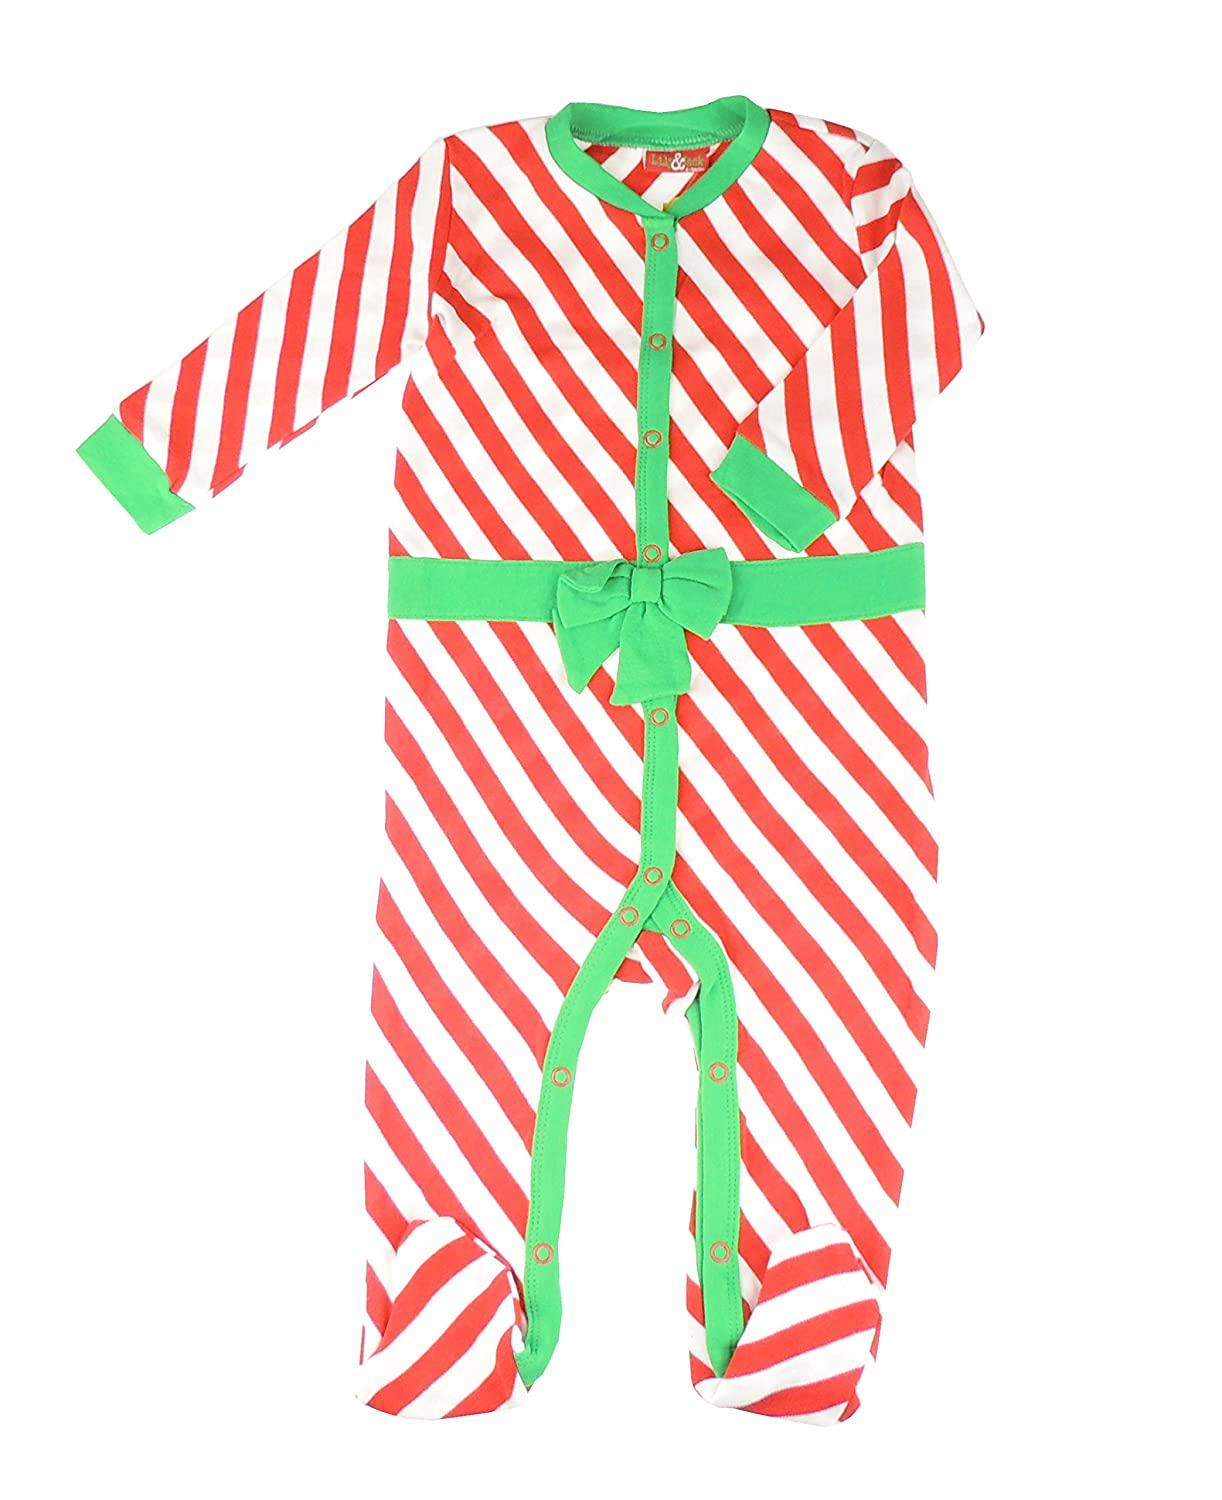 Festive Christmas Winter Baby Girls Boys Romper Sleeper All in One Red White Green Candy Cane Stripe Bow 0-3 Months Glamour Girlz